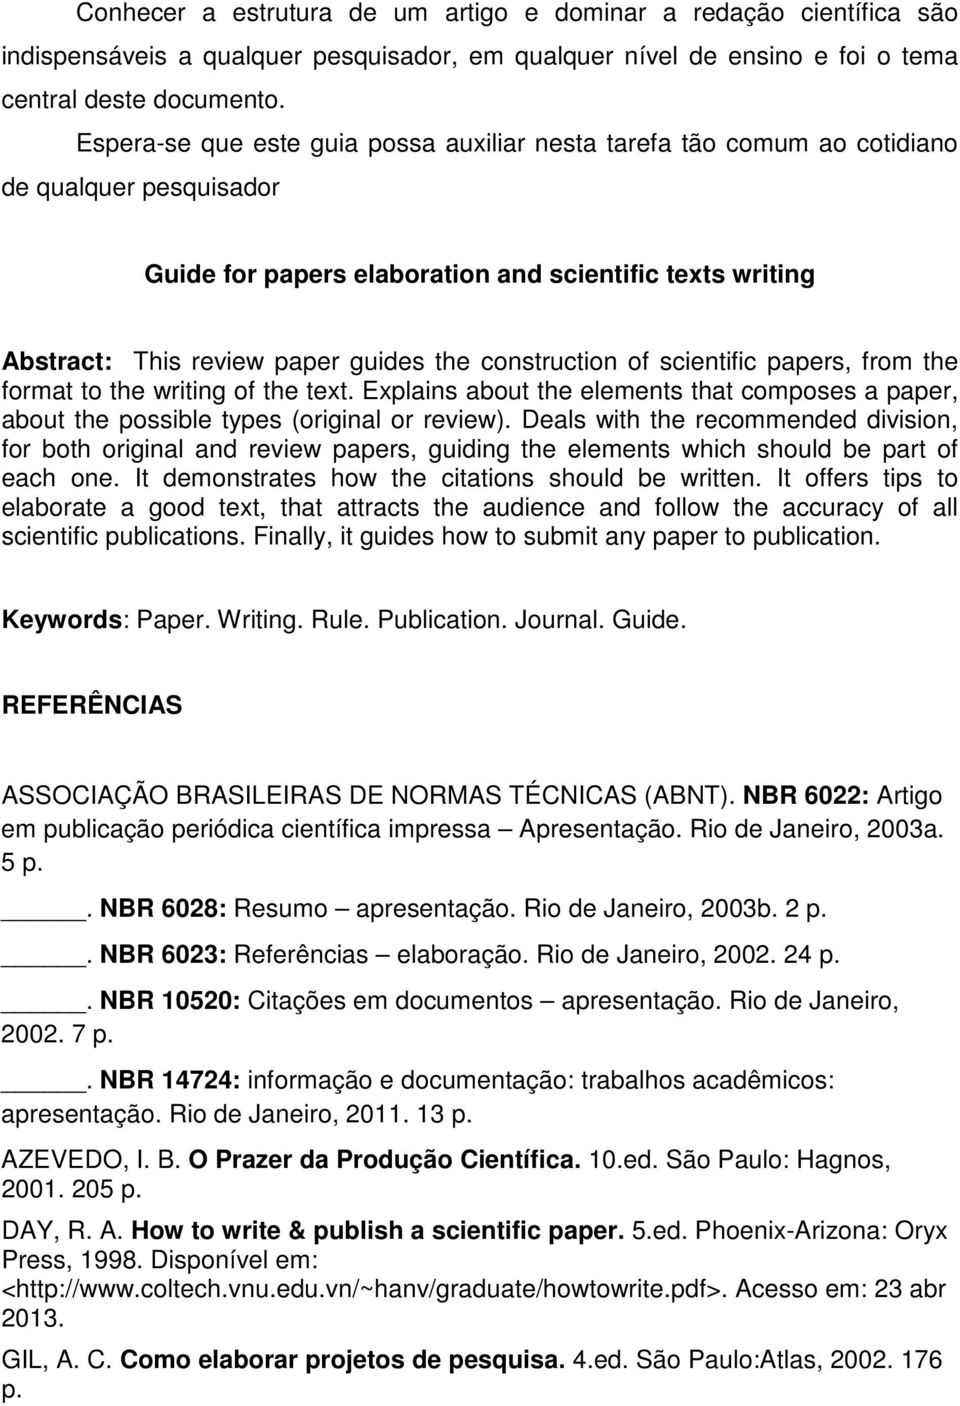 construction of scientific papers, from the format to the writing of the text. Explains about the elements that composes a paper, about the possible types (original or review).